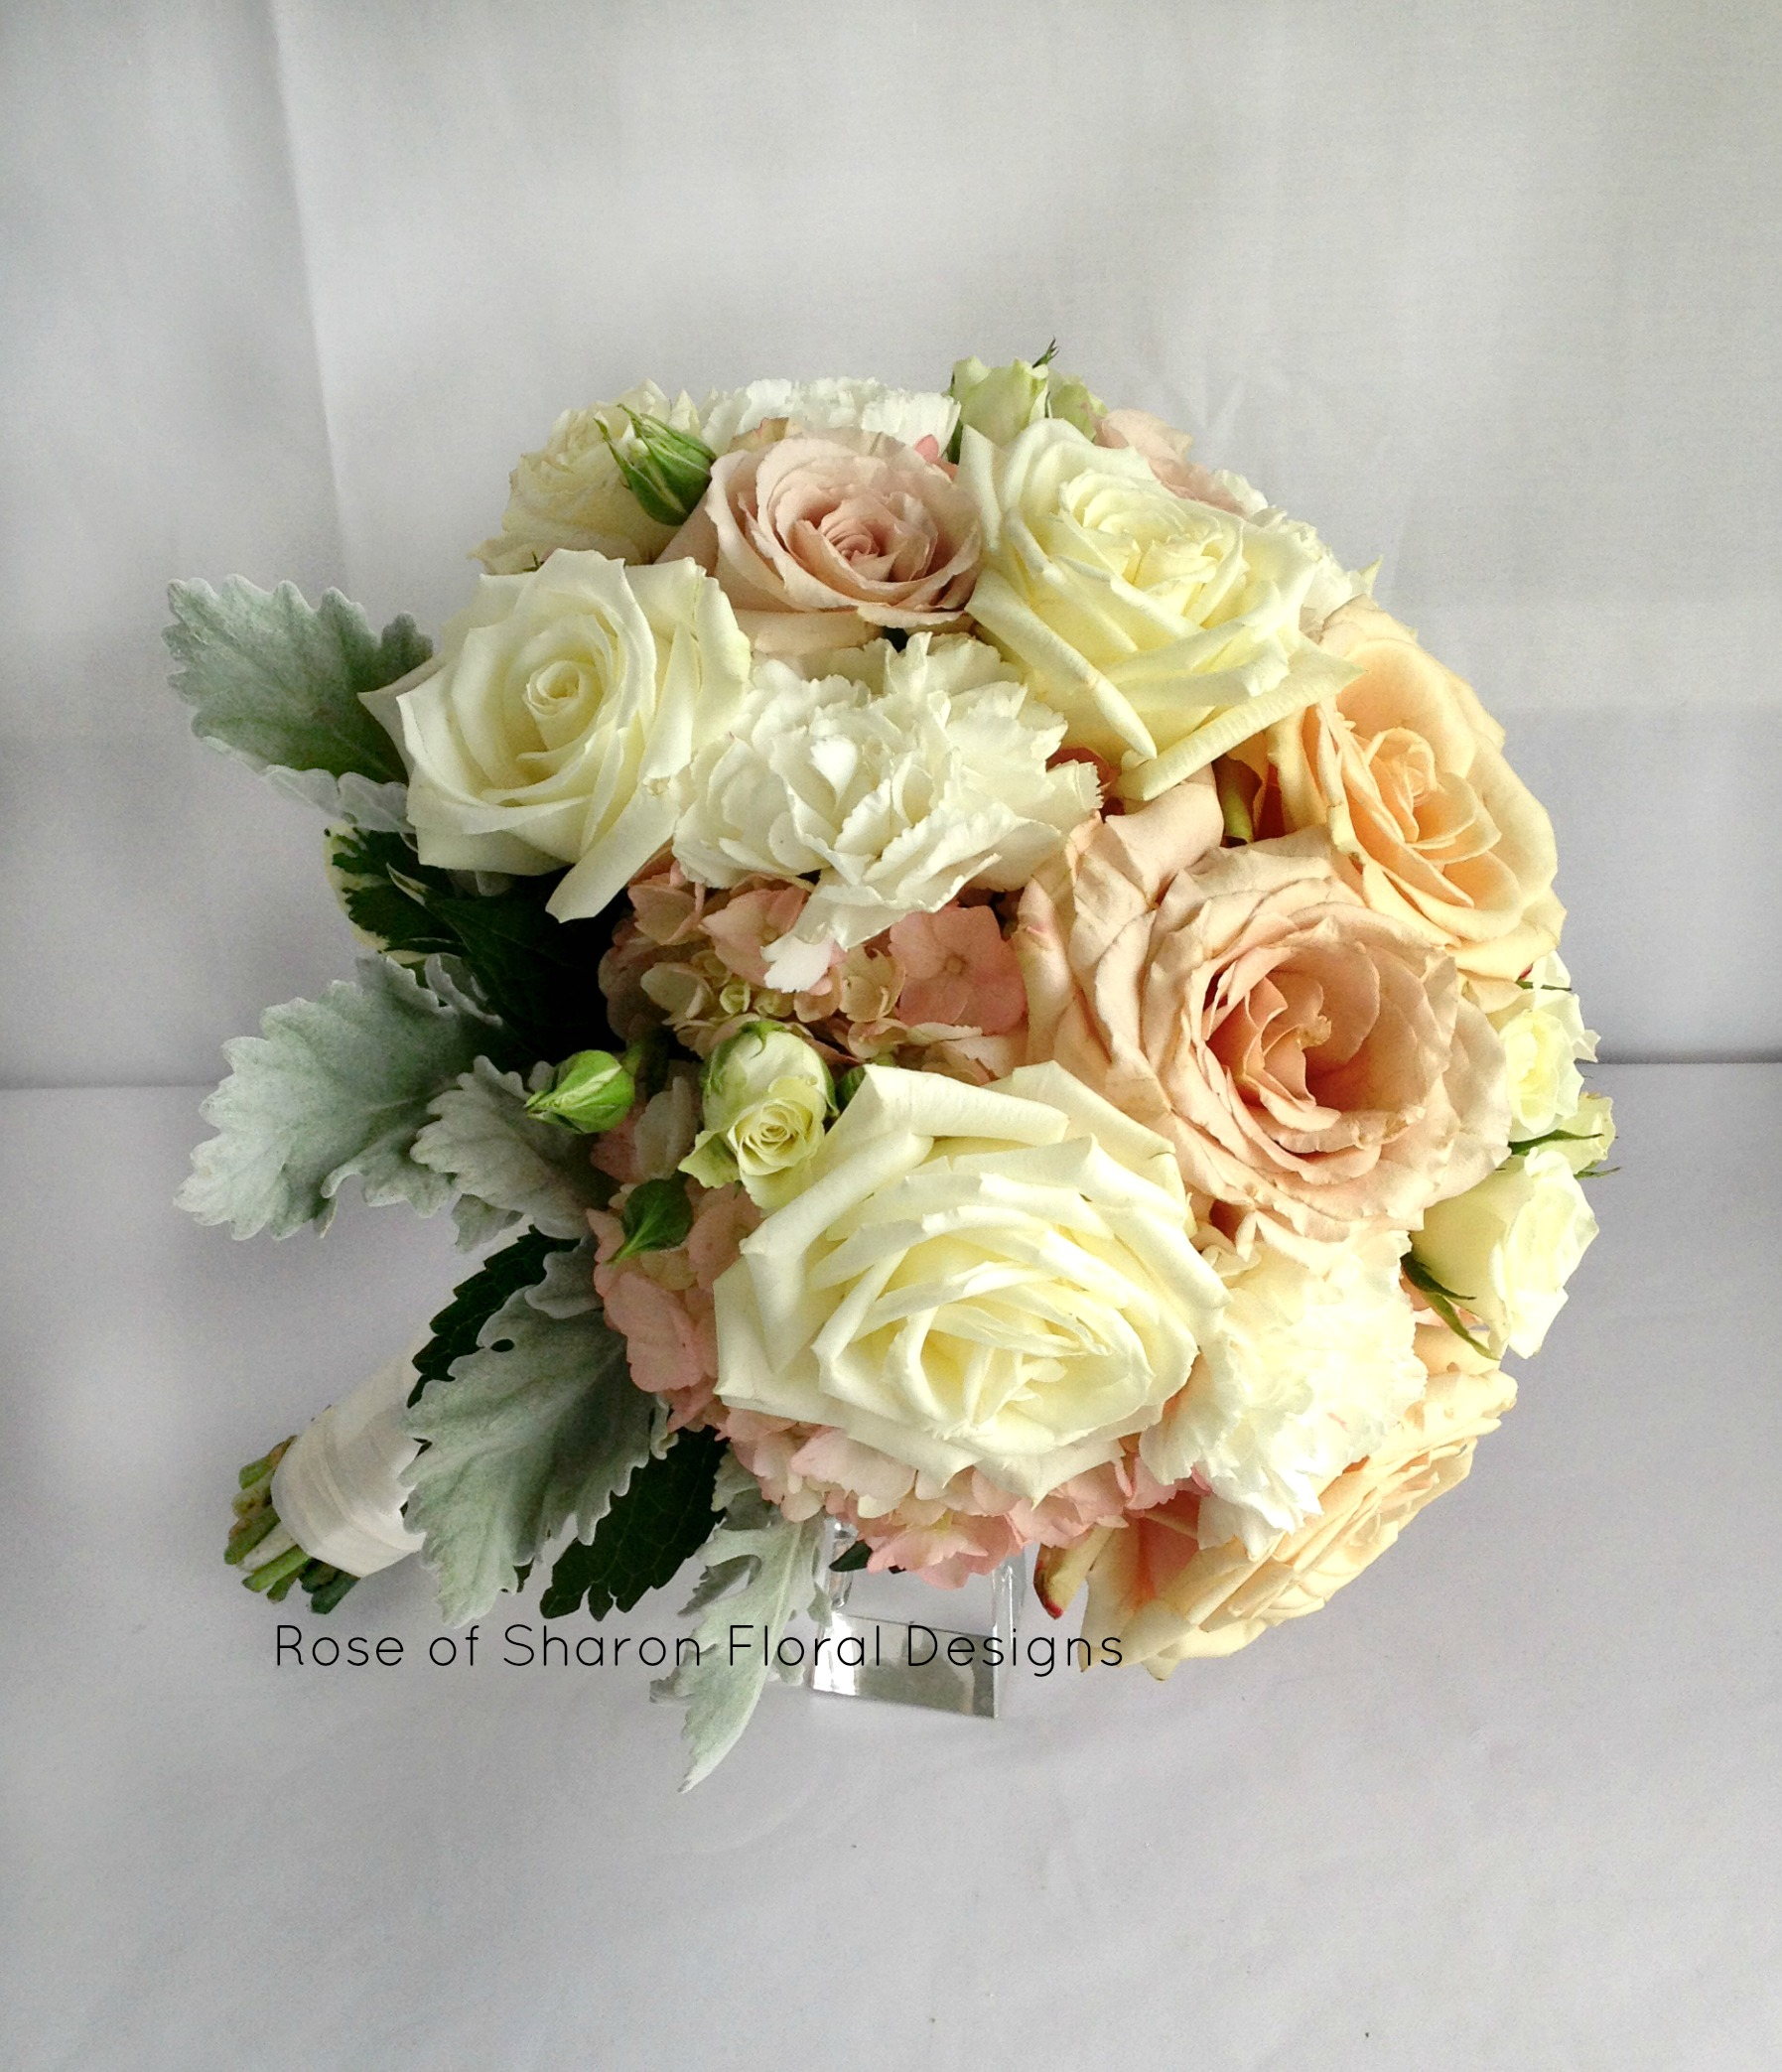 Hand Tied Hydrangea, Rose and Carnation Bouquet, Rose of Sharon Floral Designs